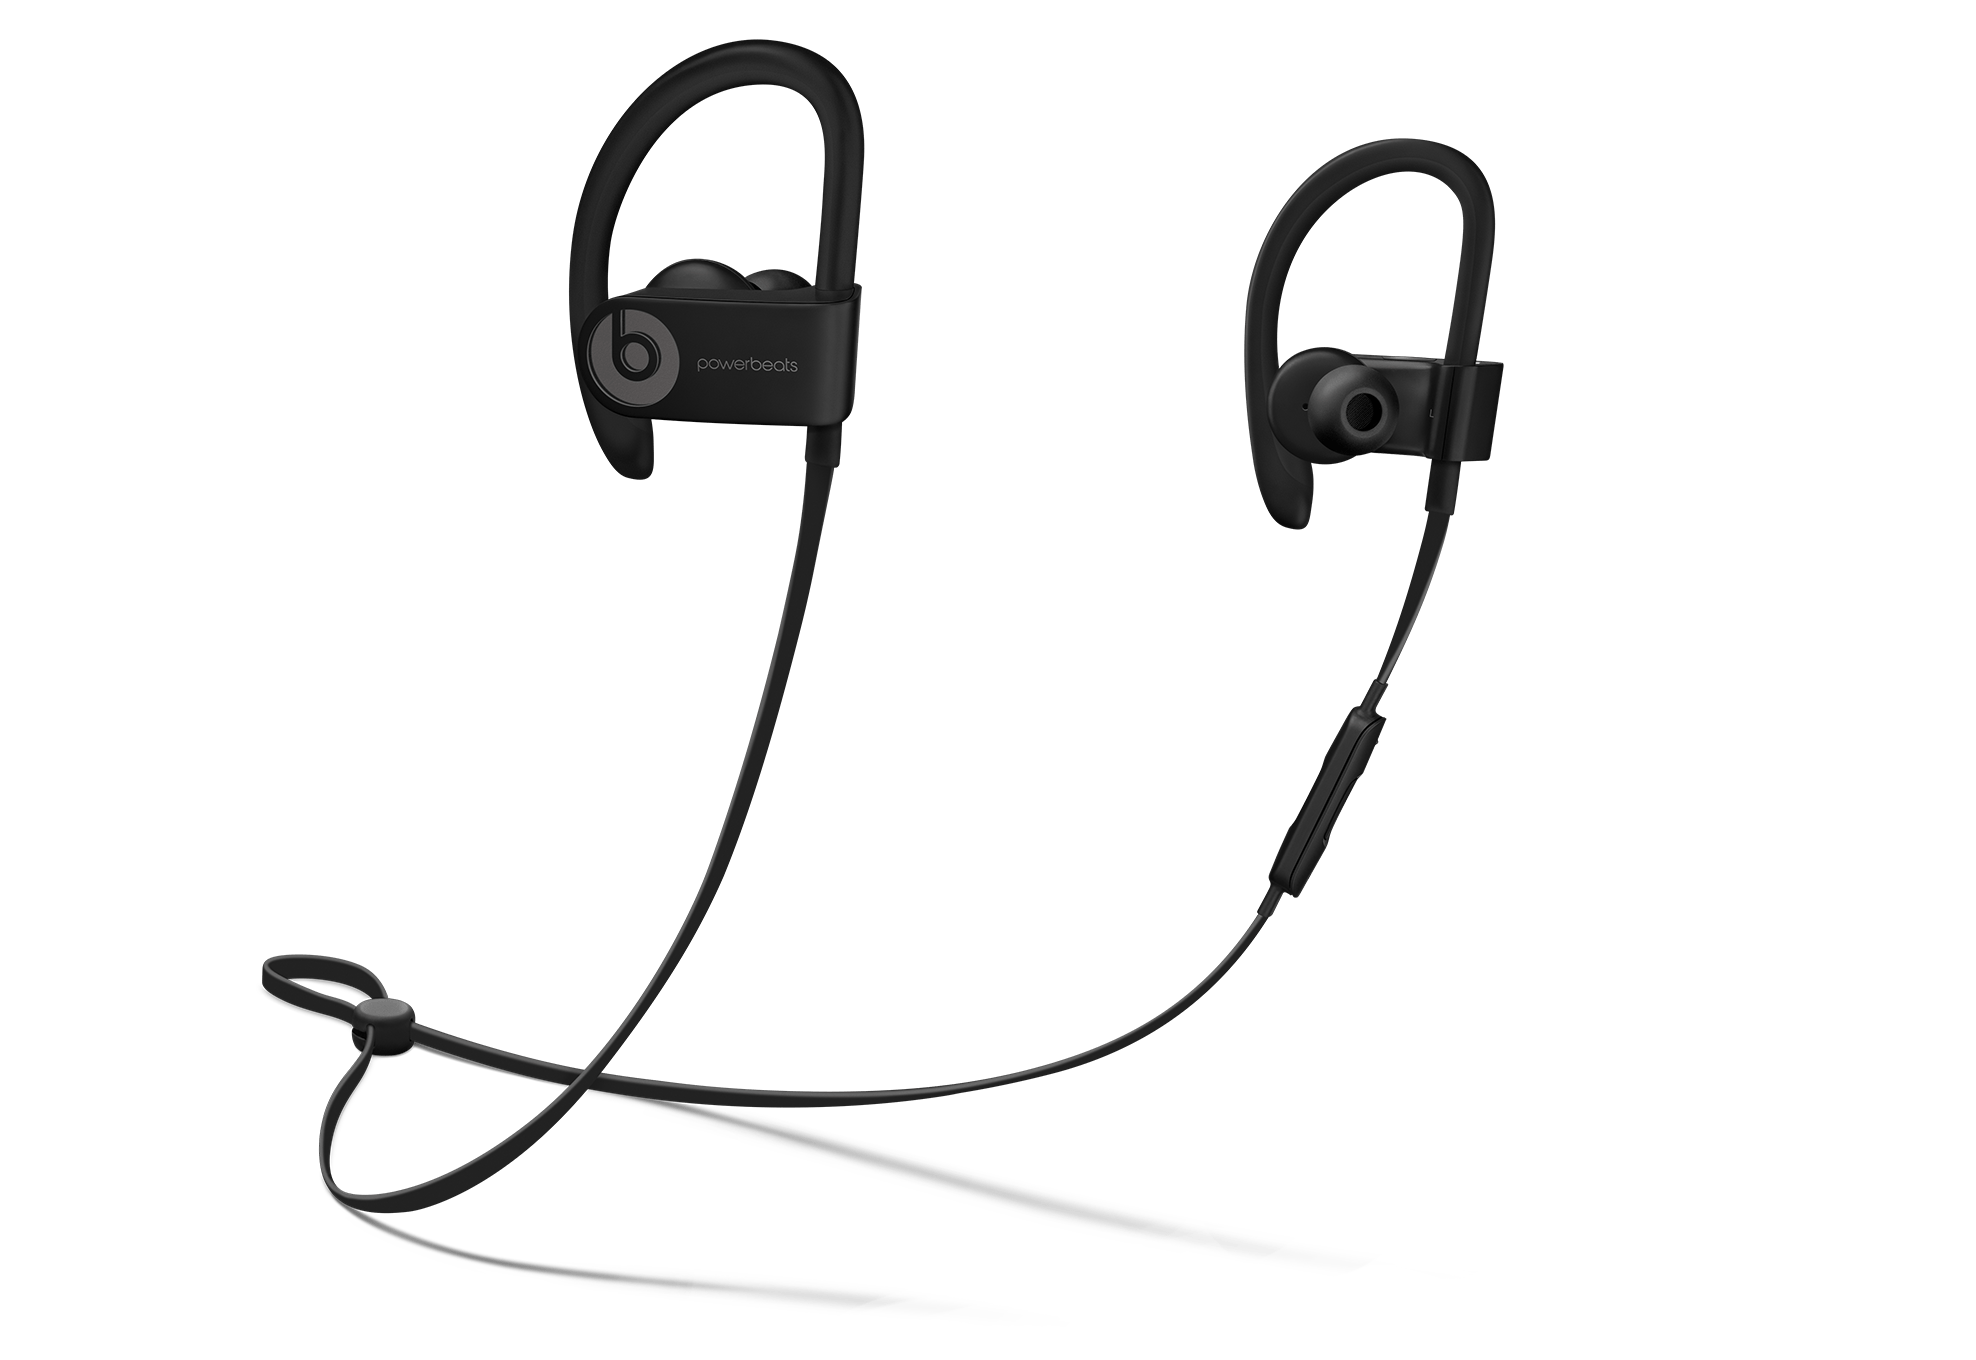 e83a2c05b10 Powerbeats3 Wireless Earphones - Black - Walmart.com